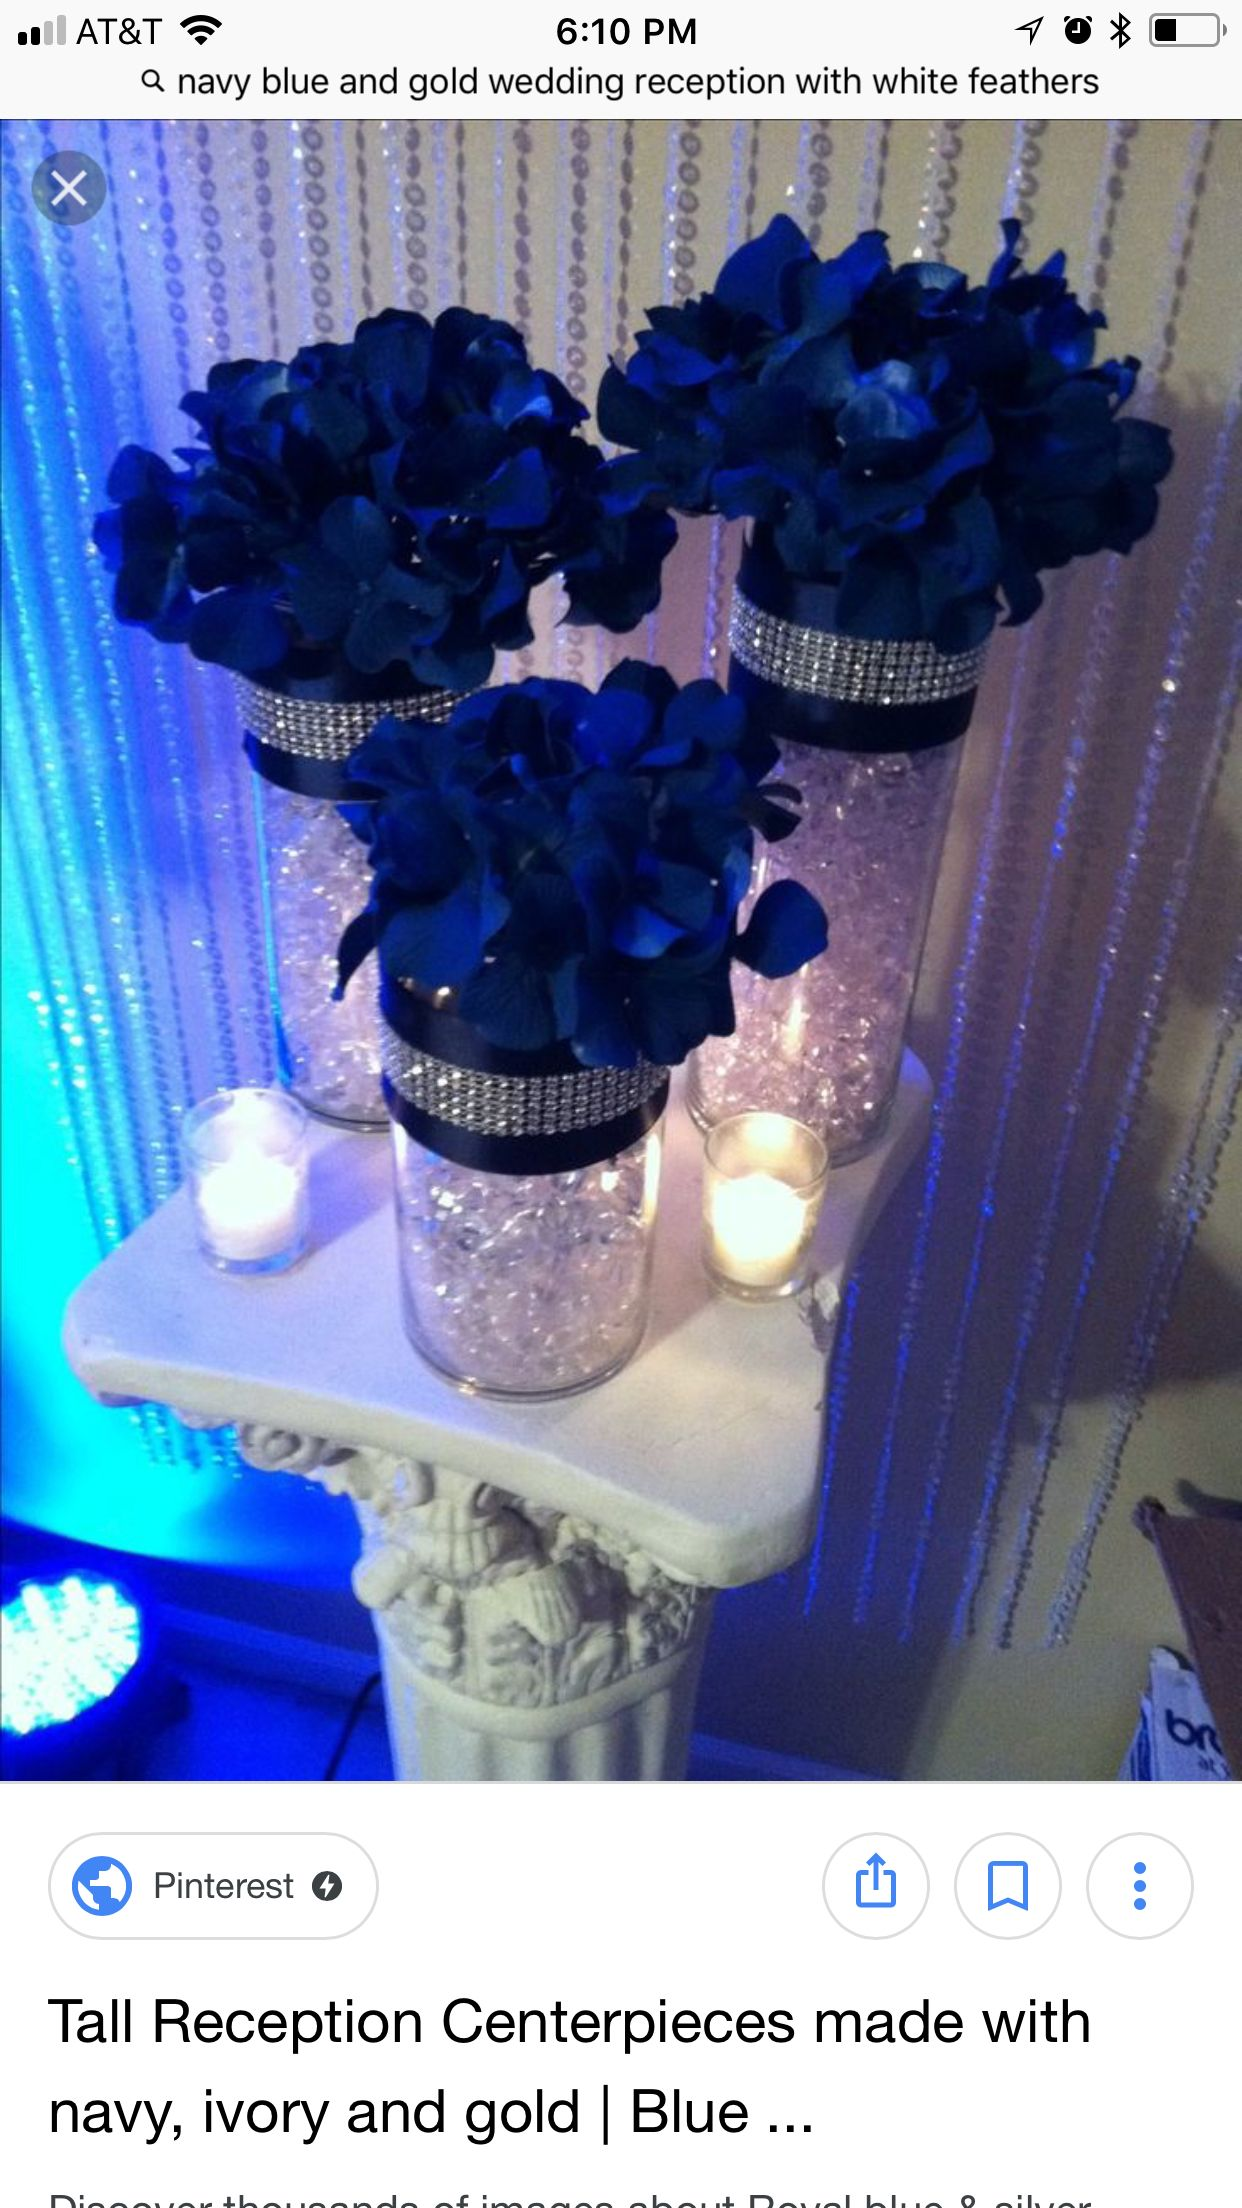 Wedding decorations with royal blue  Pin by Stephanie Seals on Wedding  Pinterest  Wedding